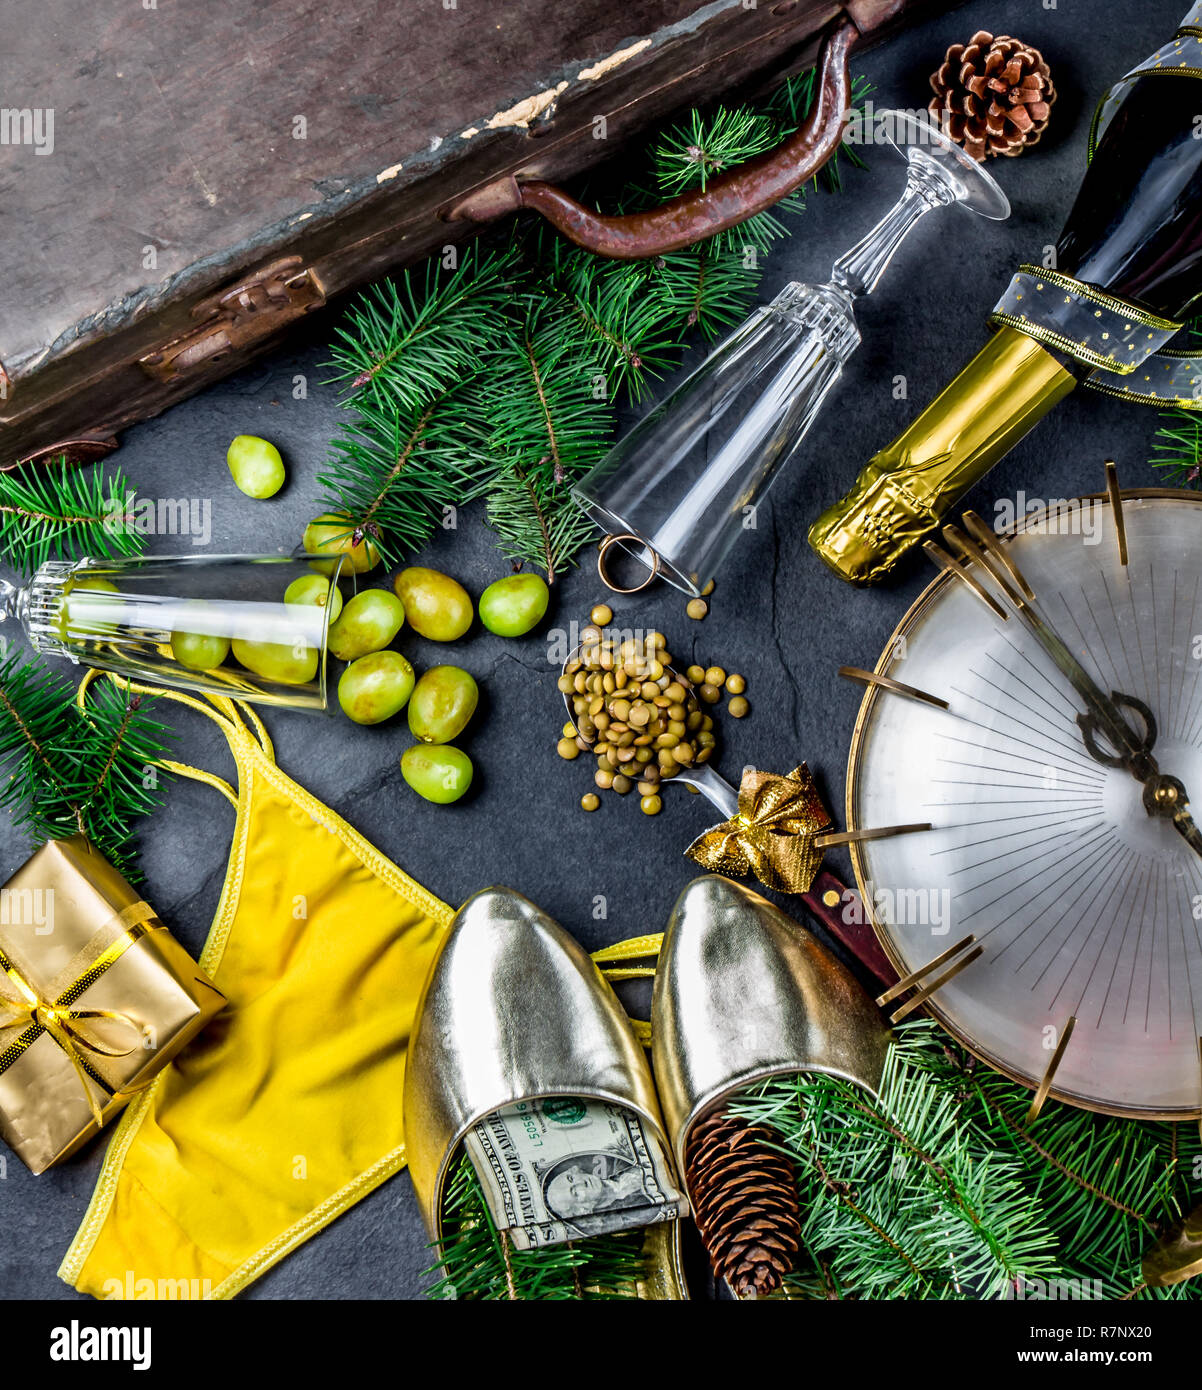 LATIN AMERICAN AND SPANISH NEW YEAR TRADITIONS. empty suitcase, lentil spoon, yellow interior clothes, gold ring in champagne, 12 grapes, money in shoe. Christmas background - Stock Image